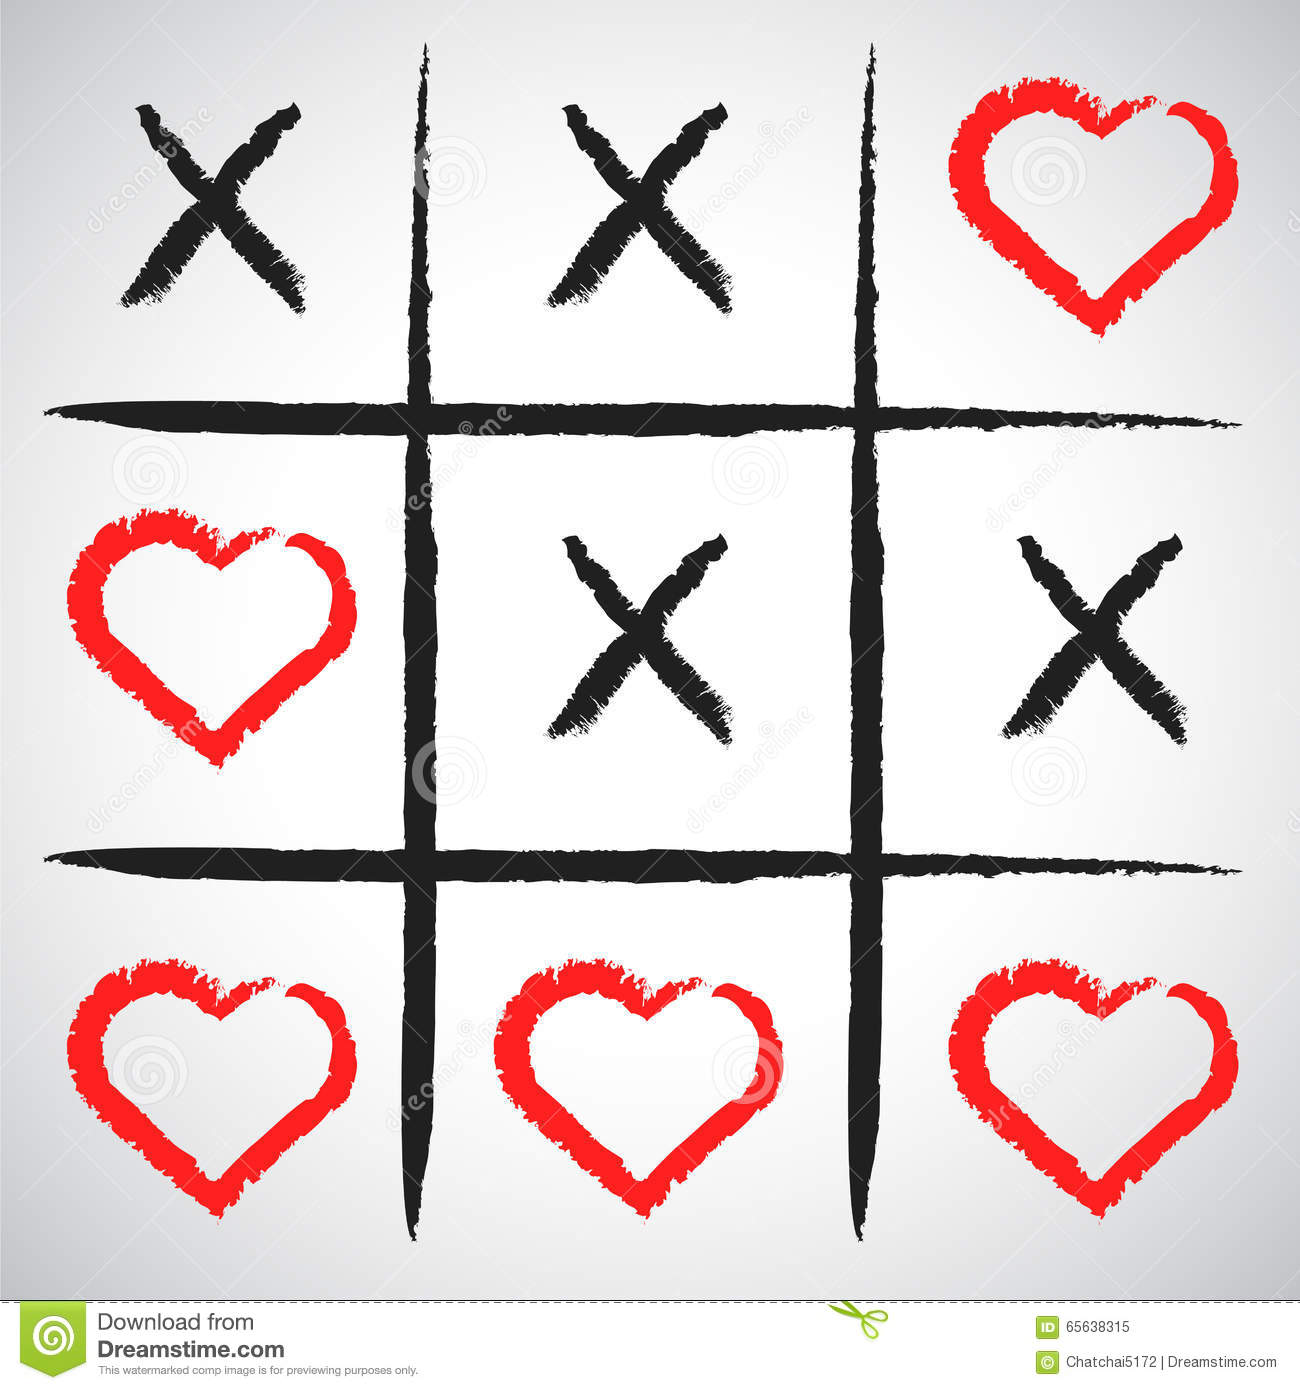 Simple Game - X-O Game.Hand Drawn Tic-tac-toe Elements.Happy Val ...